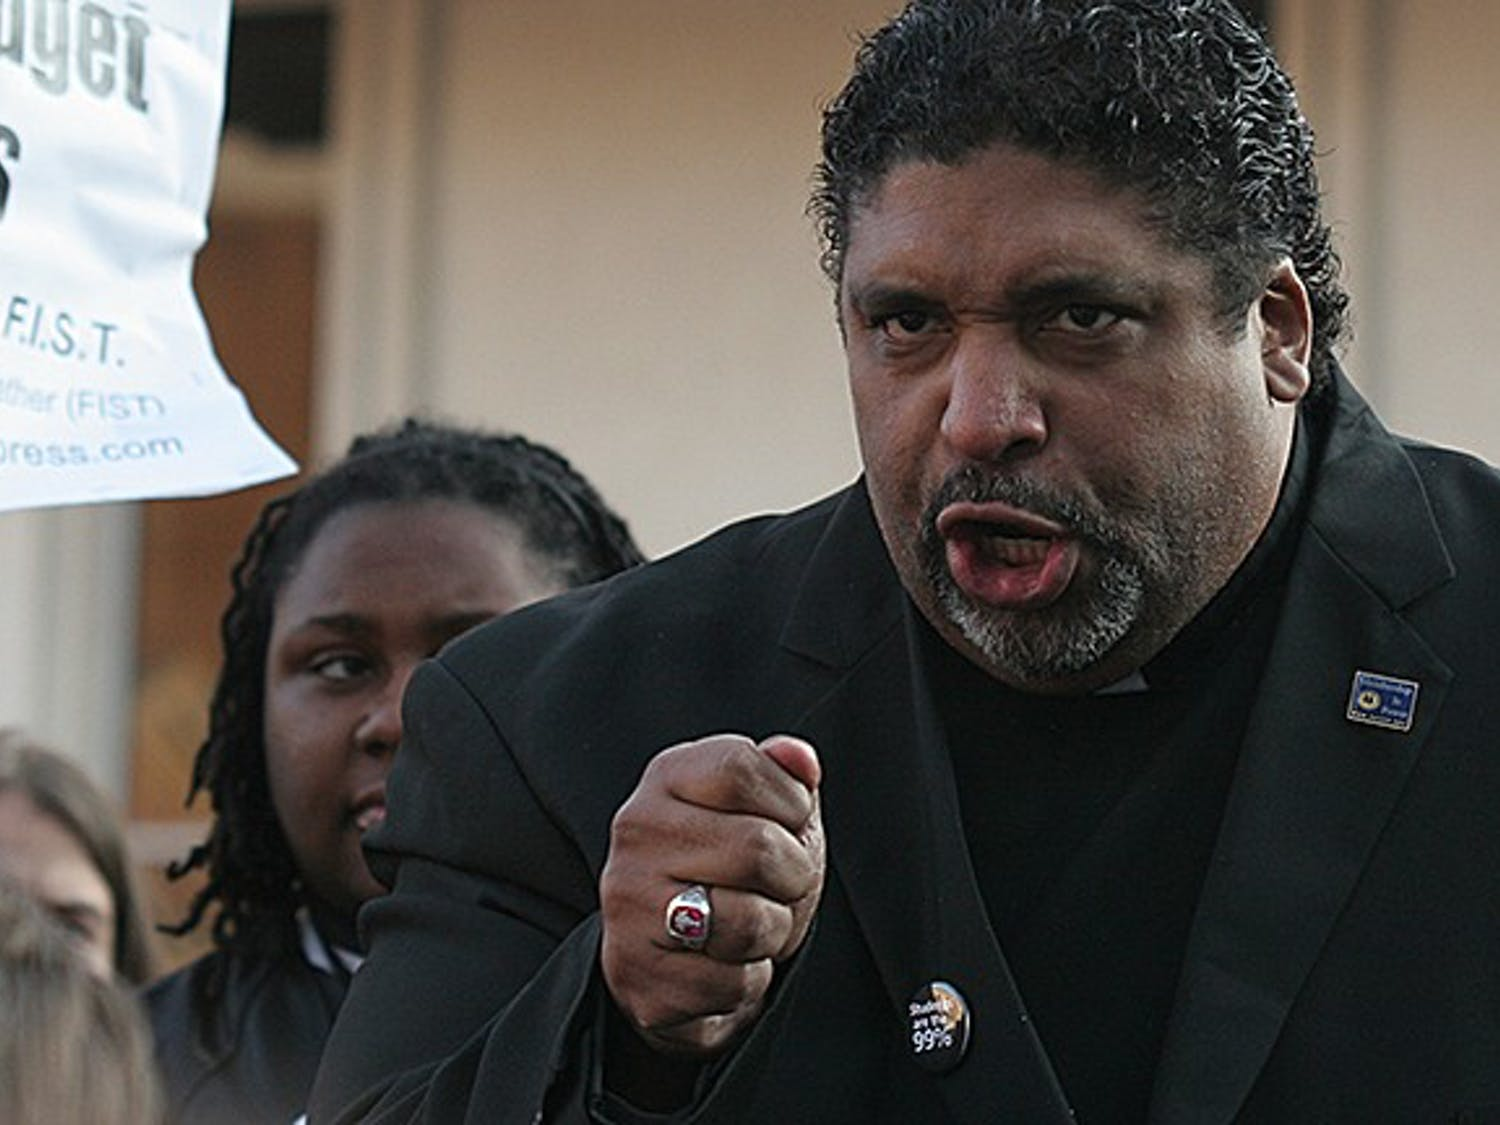 """Rev. Dr. William J. Barber II, president of the North Carolina chapter of the NAACP, speaks to students of the BOG protest Friday morning.""""You are the student movement of this generation.""""""""Forward together, not one step back!""""""""We will not be divided, nor defeated.  We are the generation that refuses to go backwards."""""""